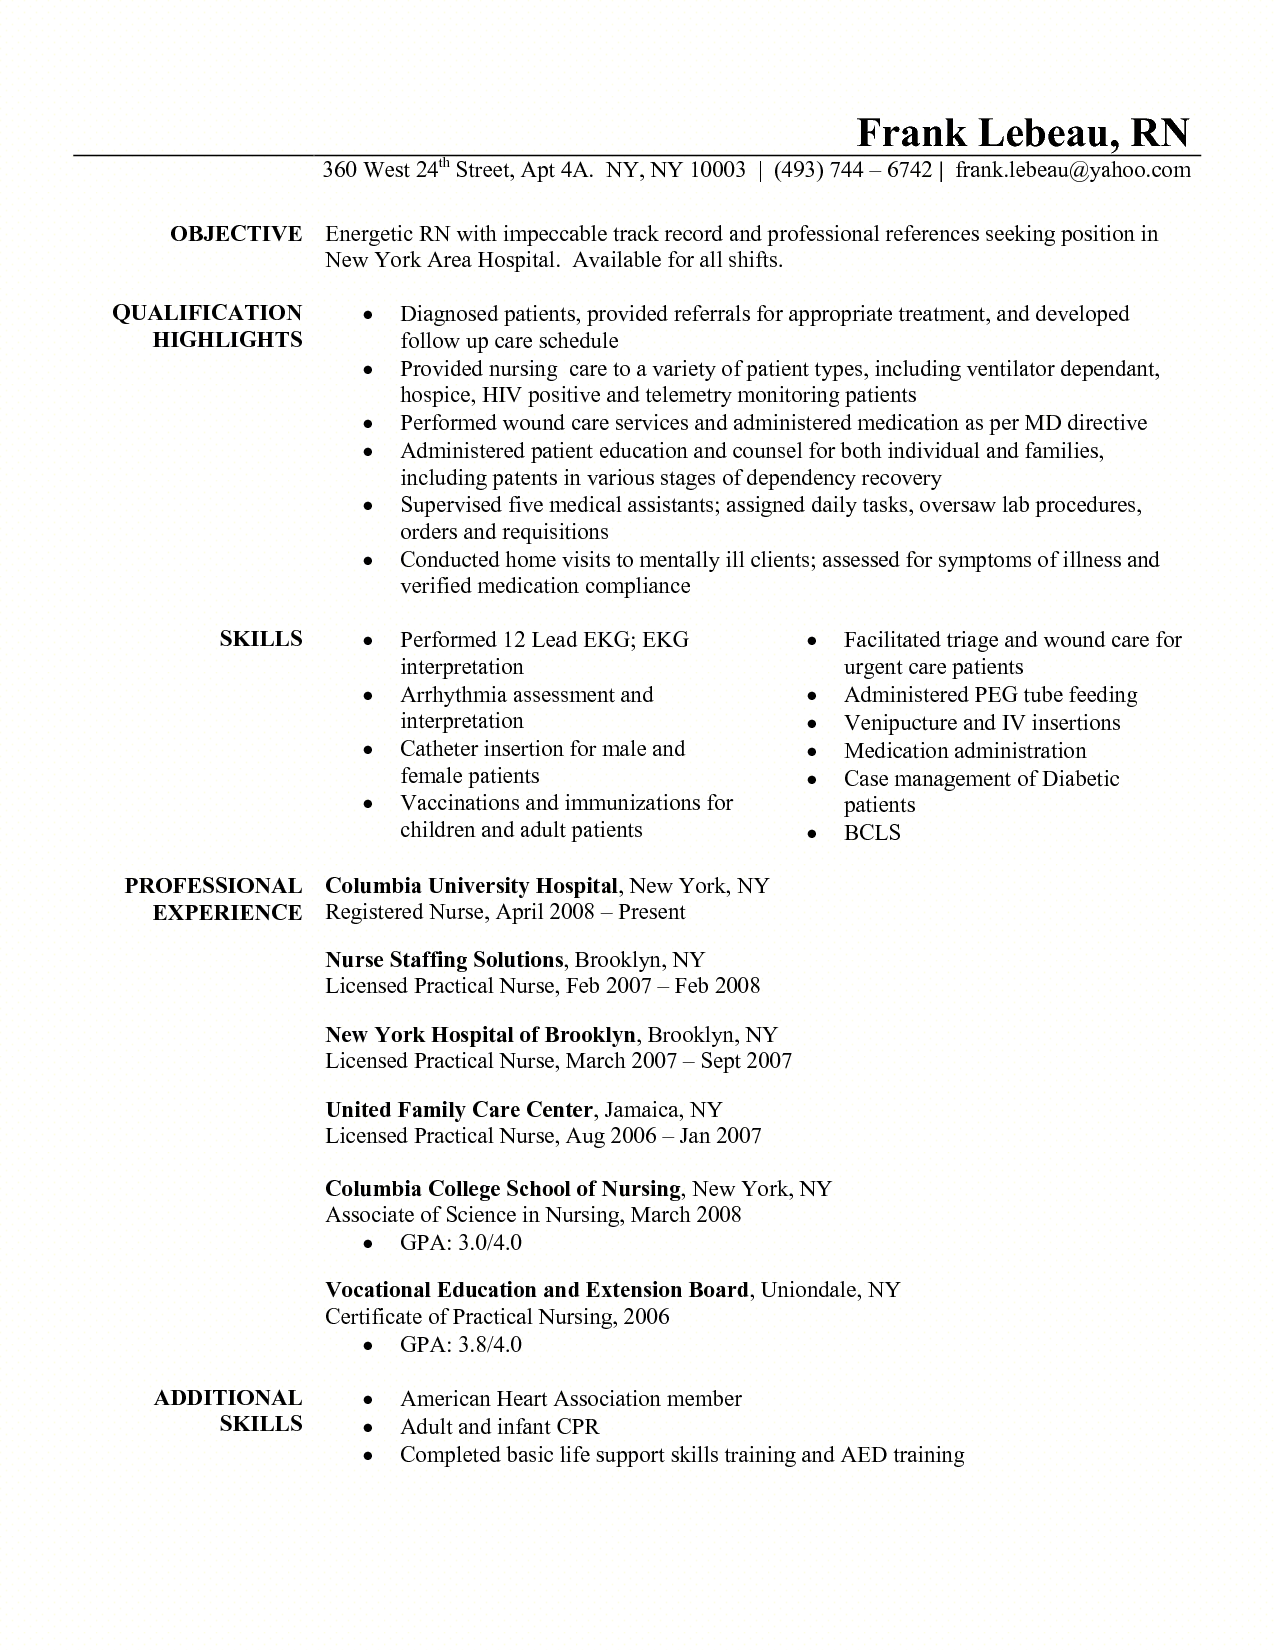 Nurses Resume Format Samples Resume For Triage Nurse Http Resumecareer Info